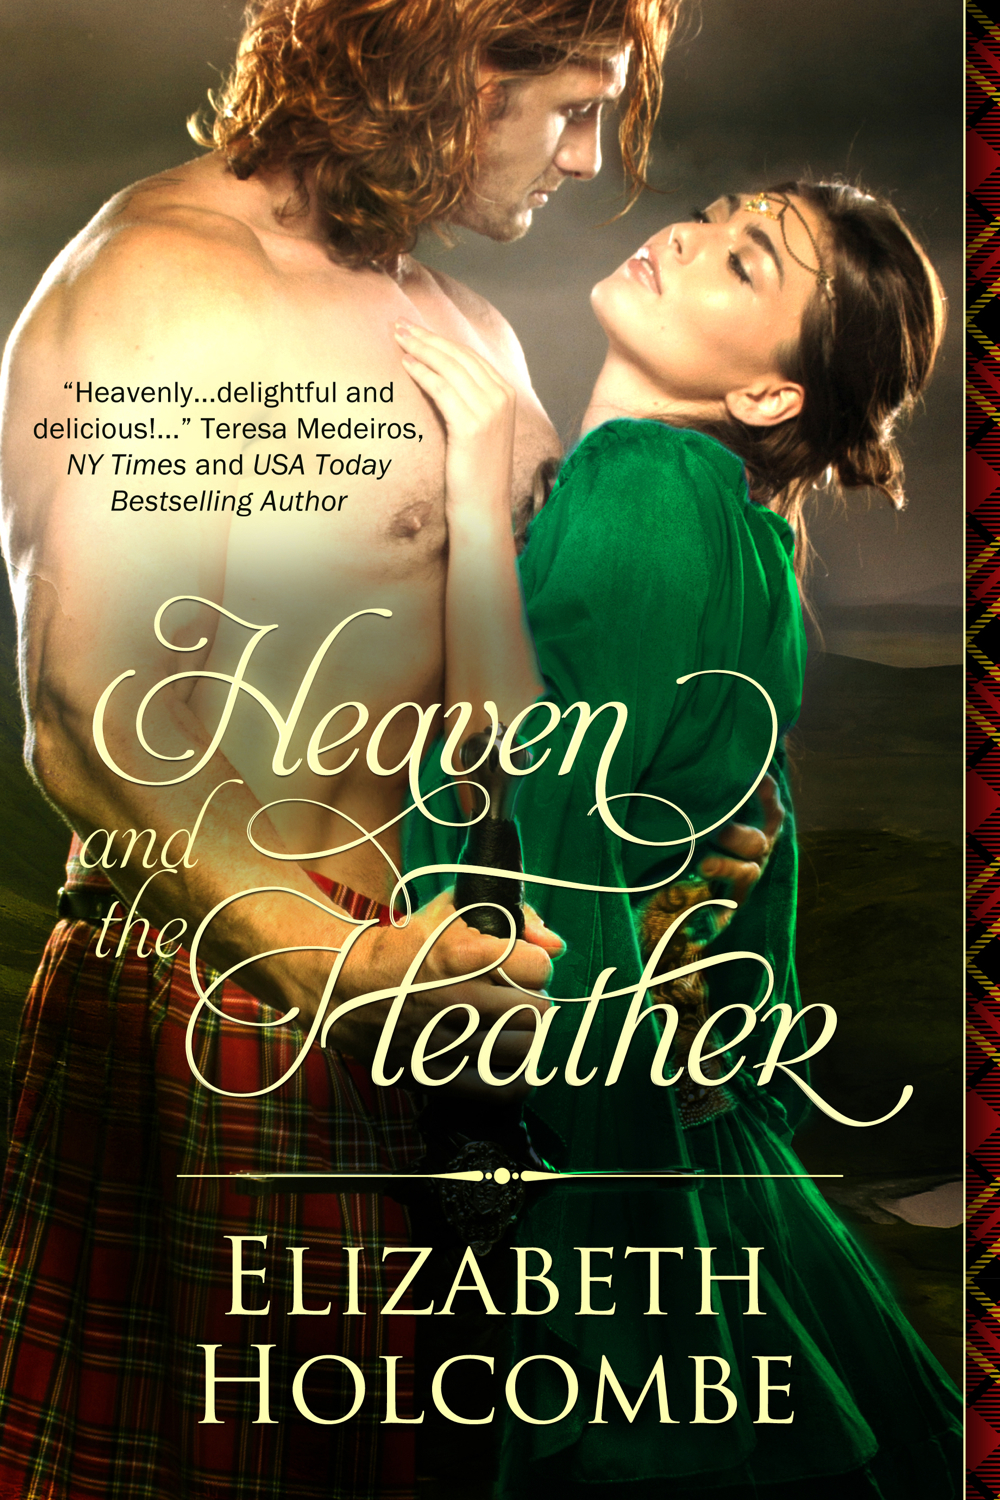 Historical Romance Book Covers ~ Historical romance custom ebook and print book covers design